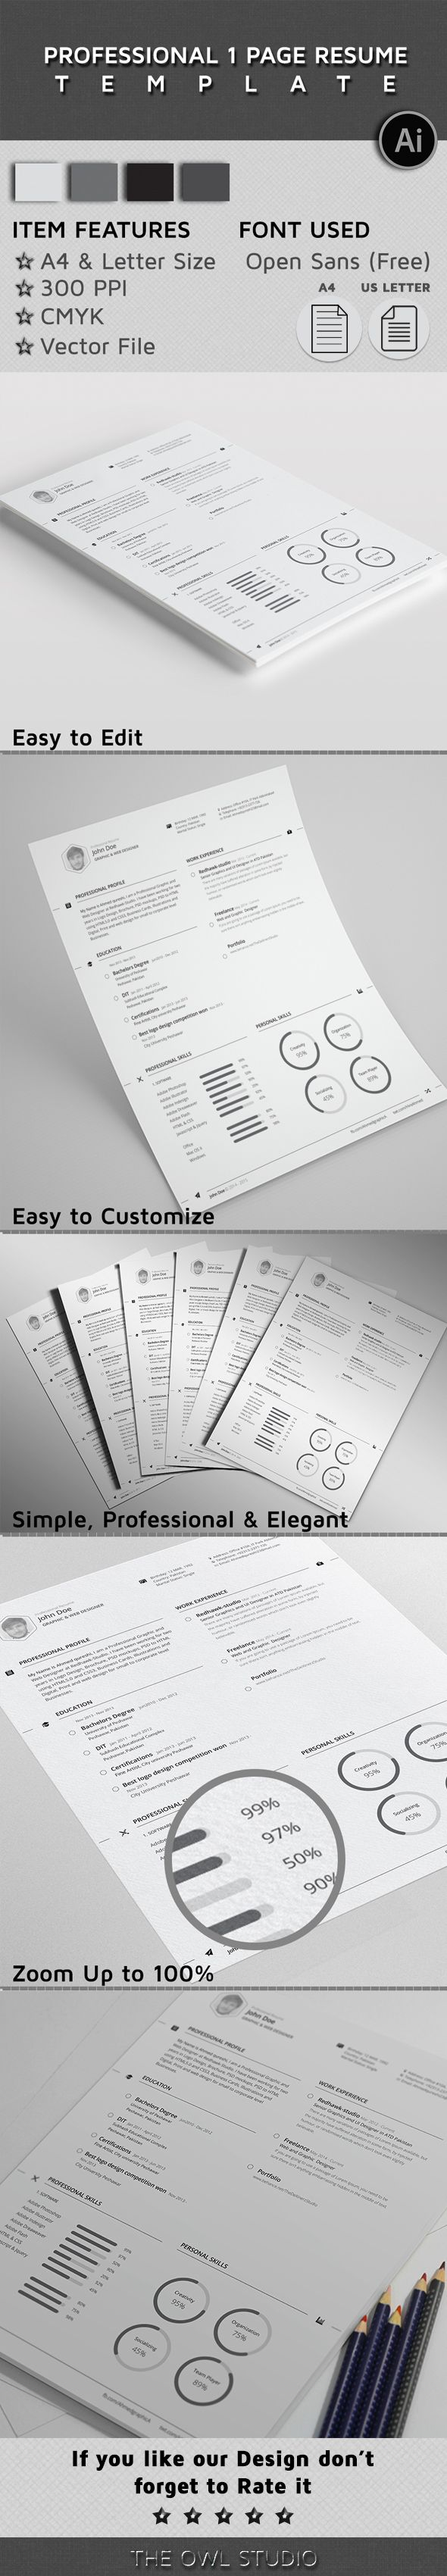 objective for finance resume%0A Free Professional One Page Resume Template on Behance   Education  Resume  Designs   Pinterest   Template and Behance